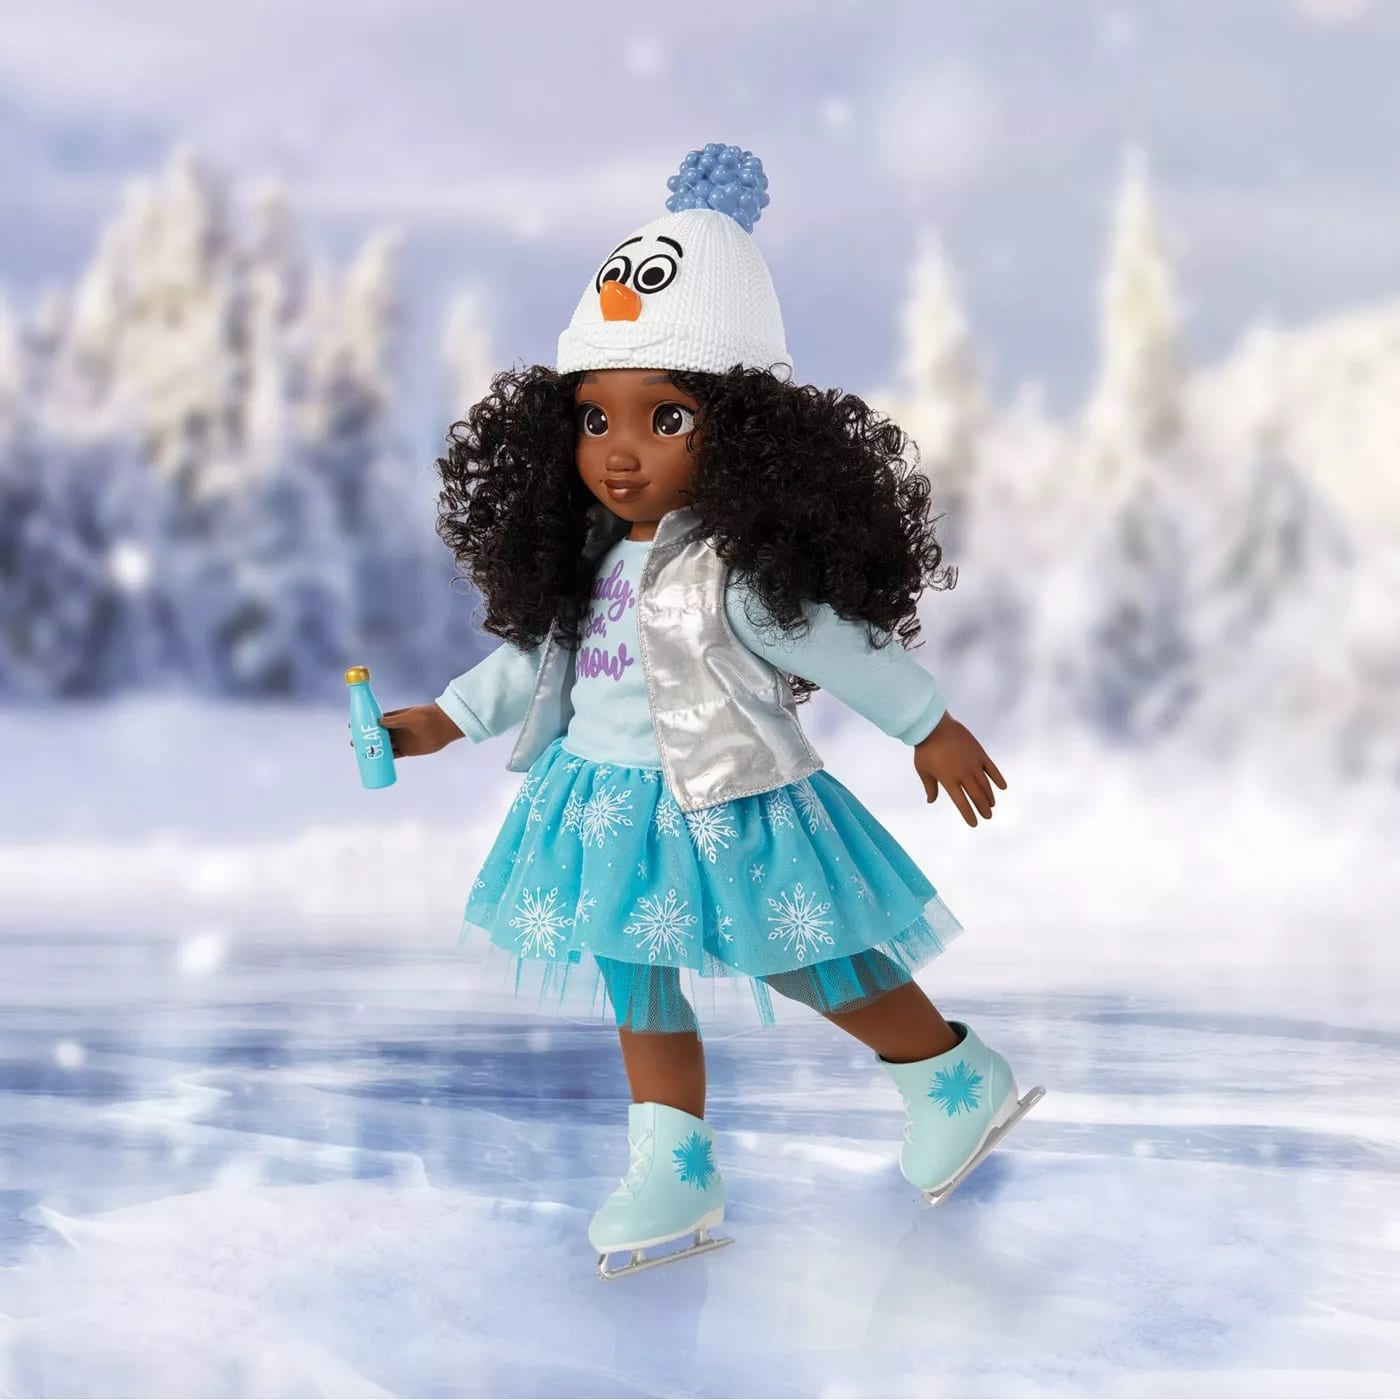 Disney ily 4EVER fashion doll collection is now available at Target 19